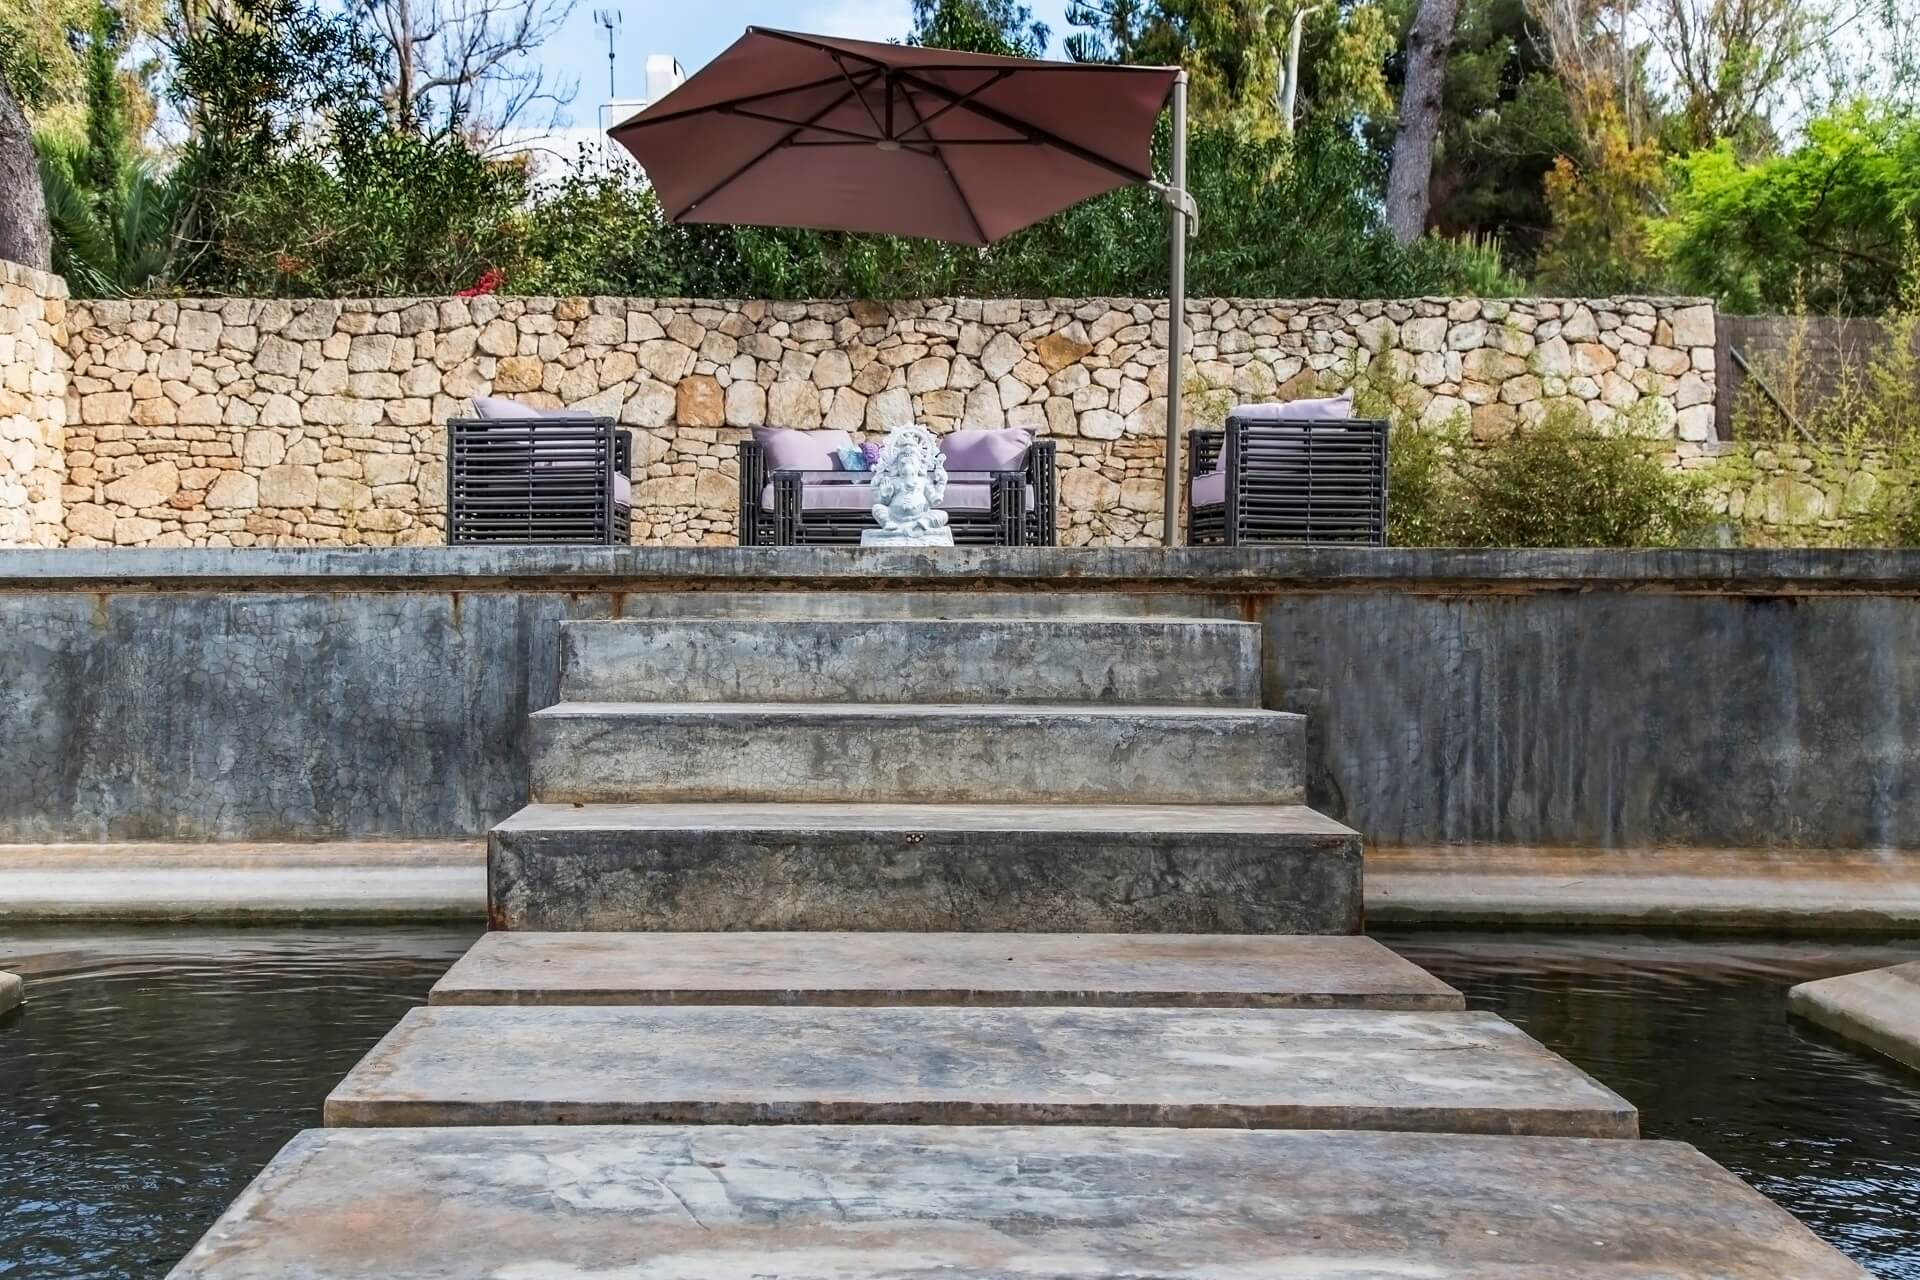 Casa India Ibiza - Outdoor Yoga Platform